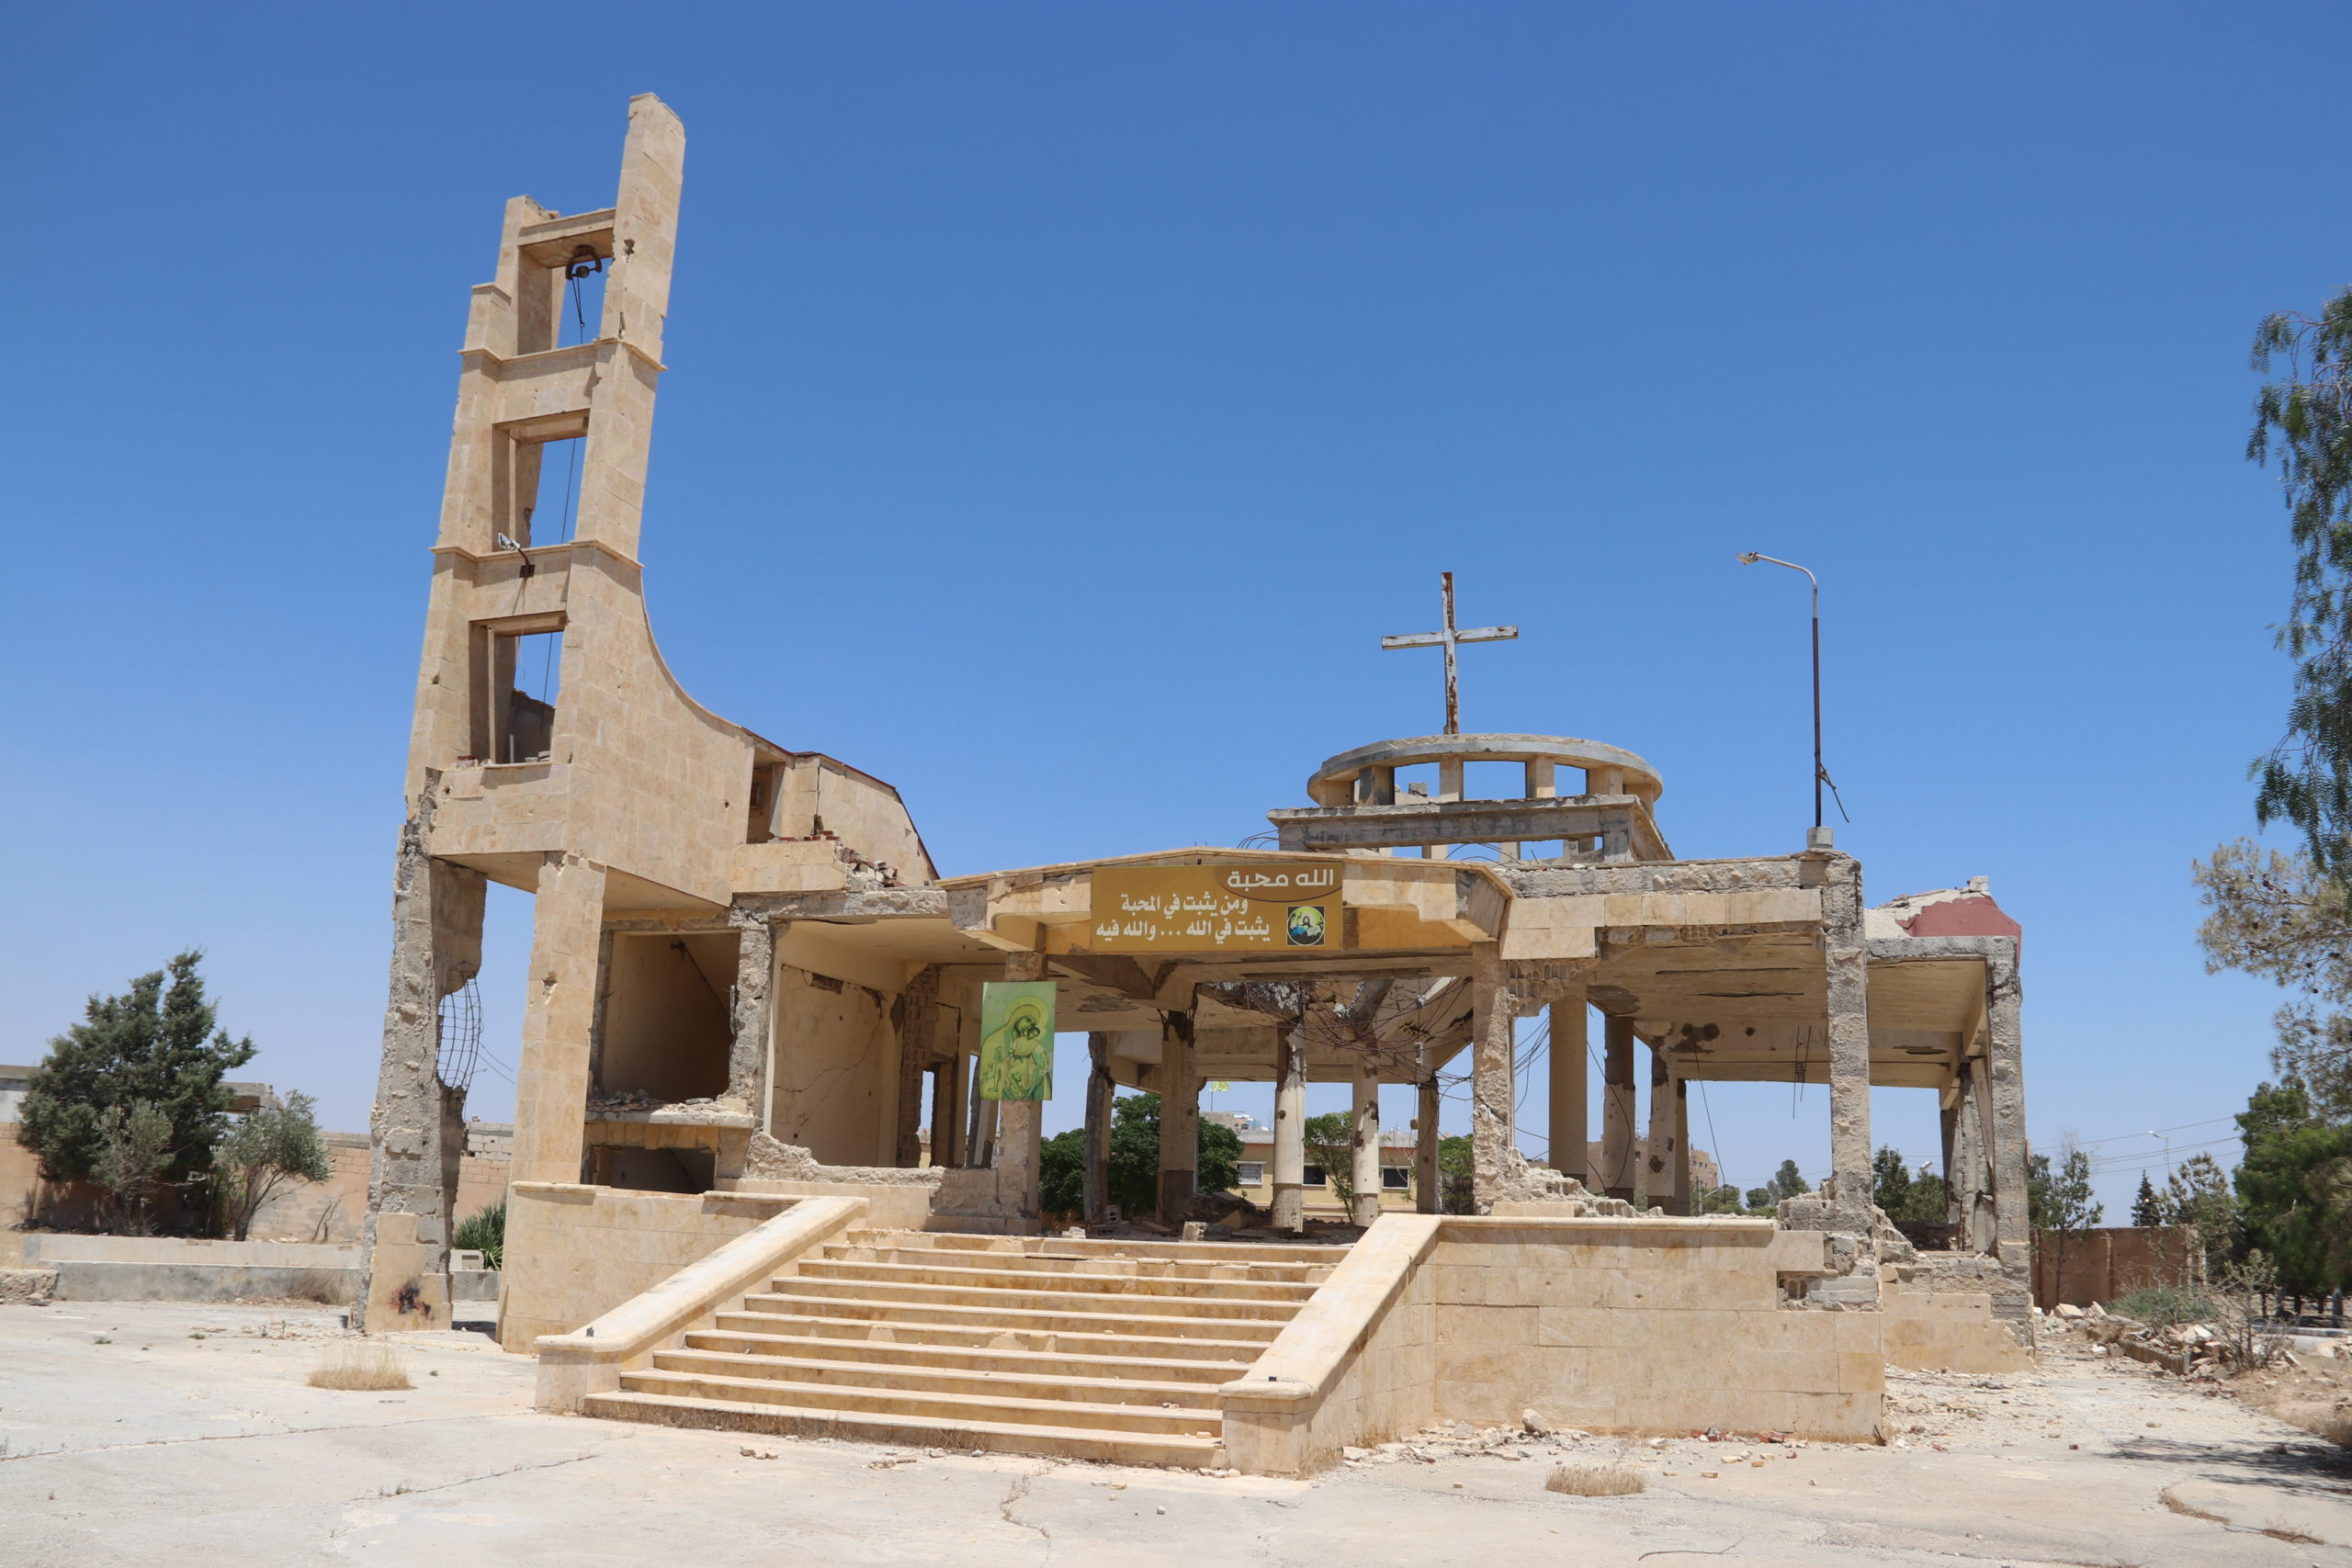 To Protect Syria's Christians, Erdogan Must be Stopped